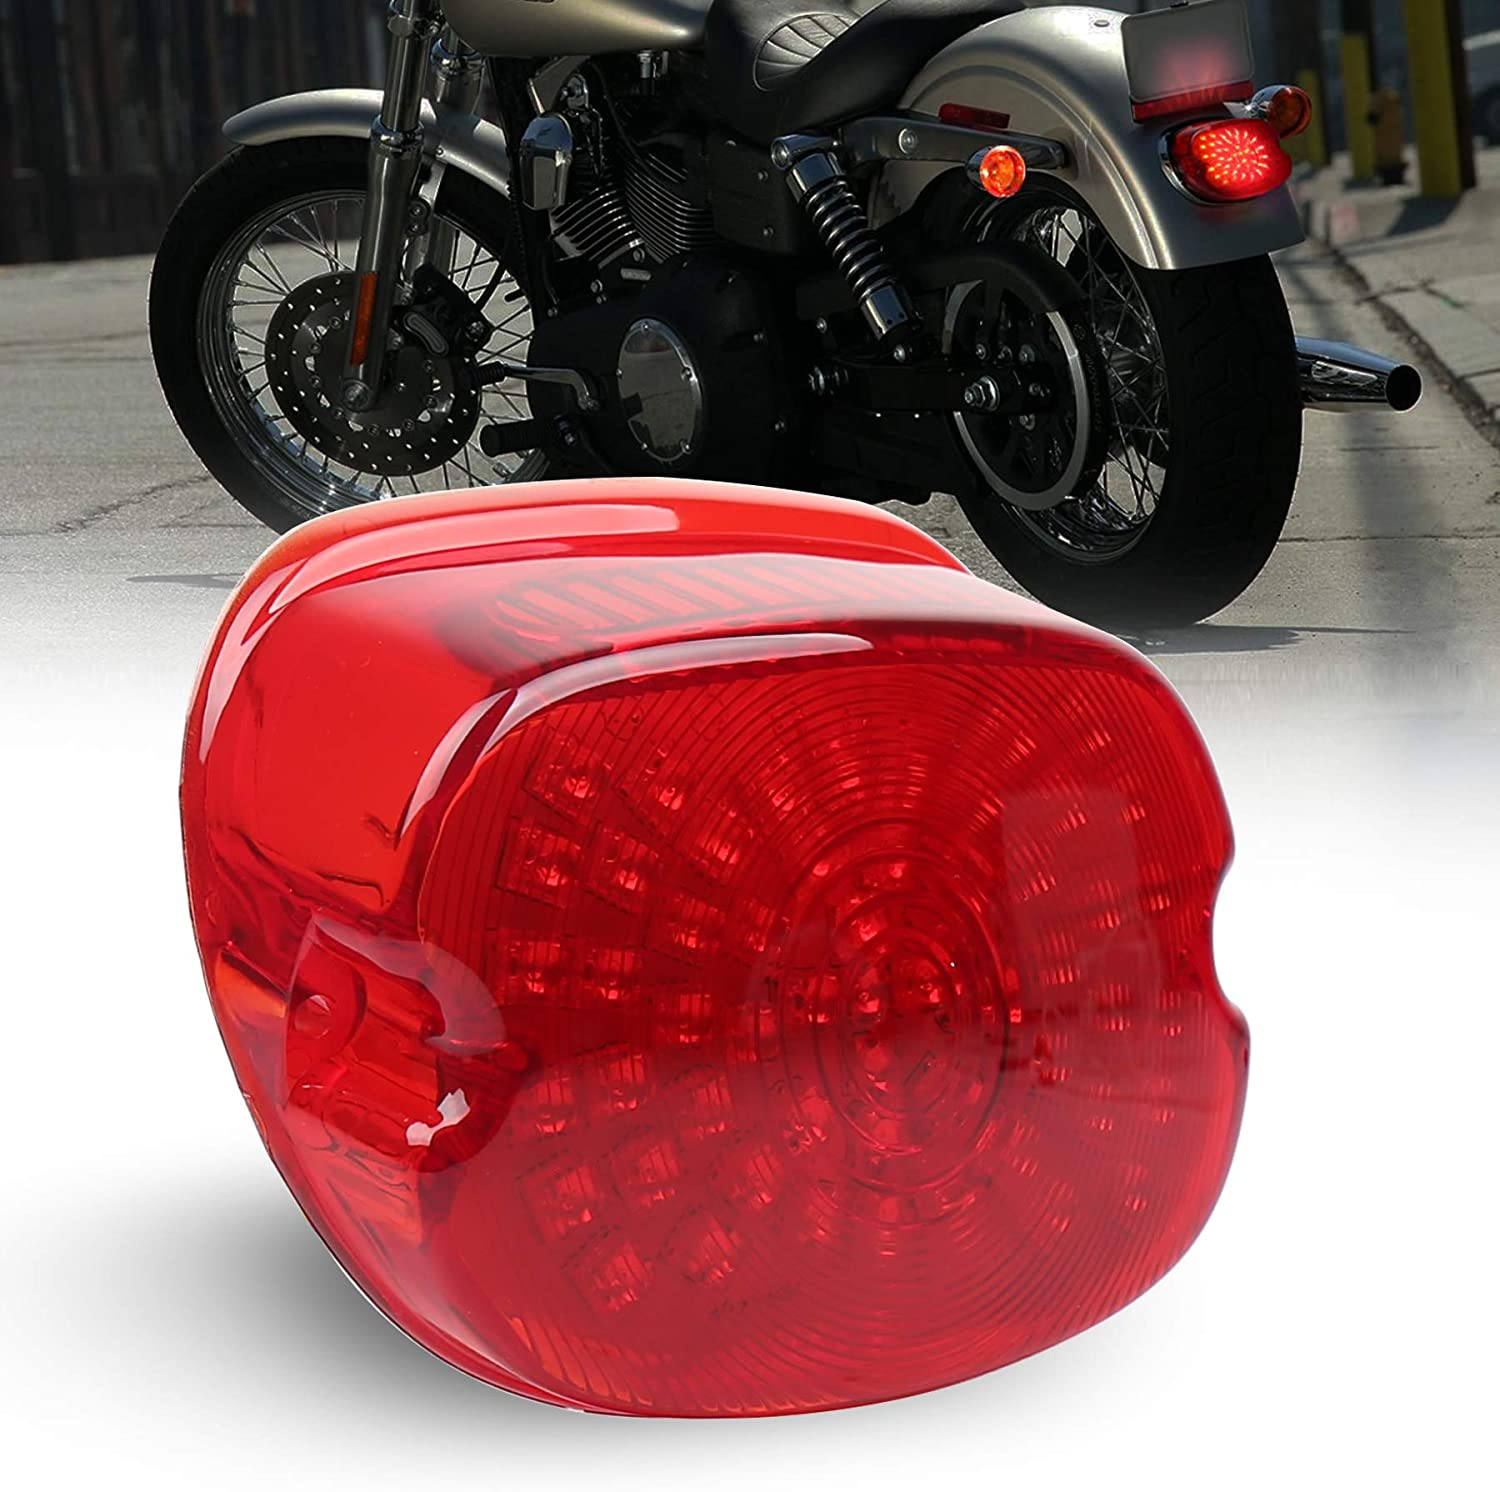 LED Brake Turn Signal Tail Light Taillight Stop Lamp For Harley Softail Dyna